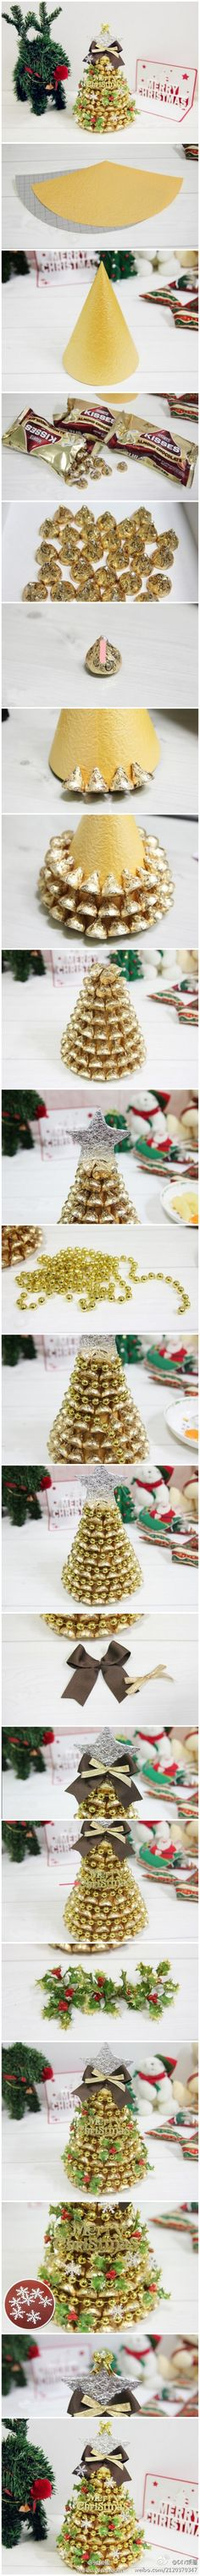 not your ordinary Hershey's kisses Christmas tree